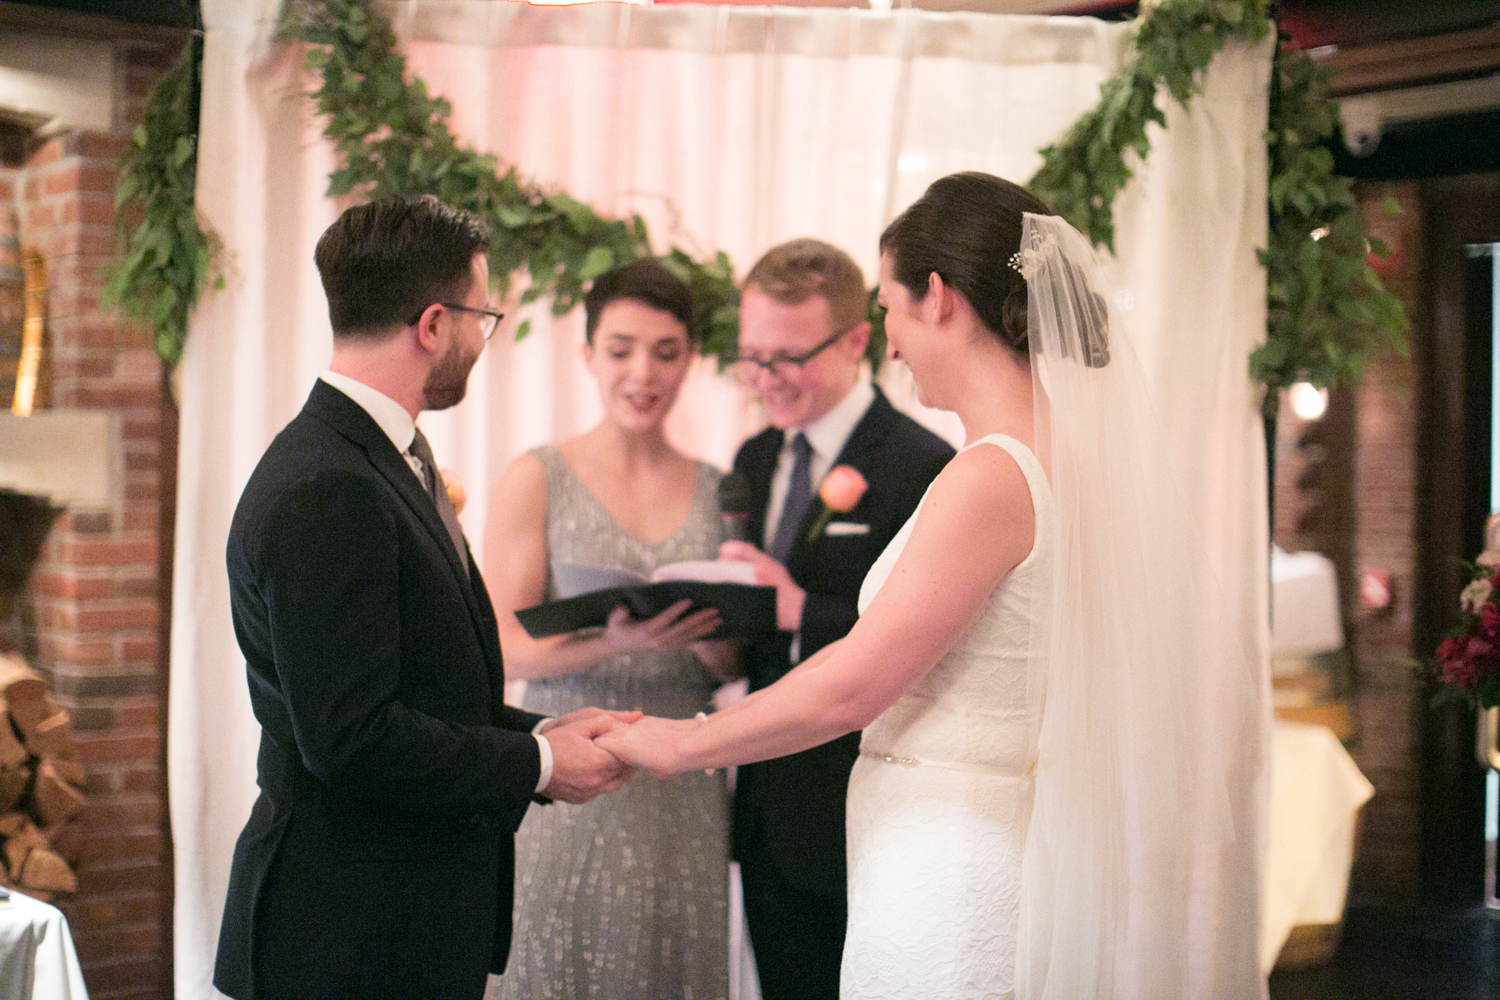 Saying I do in New York City